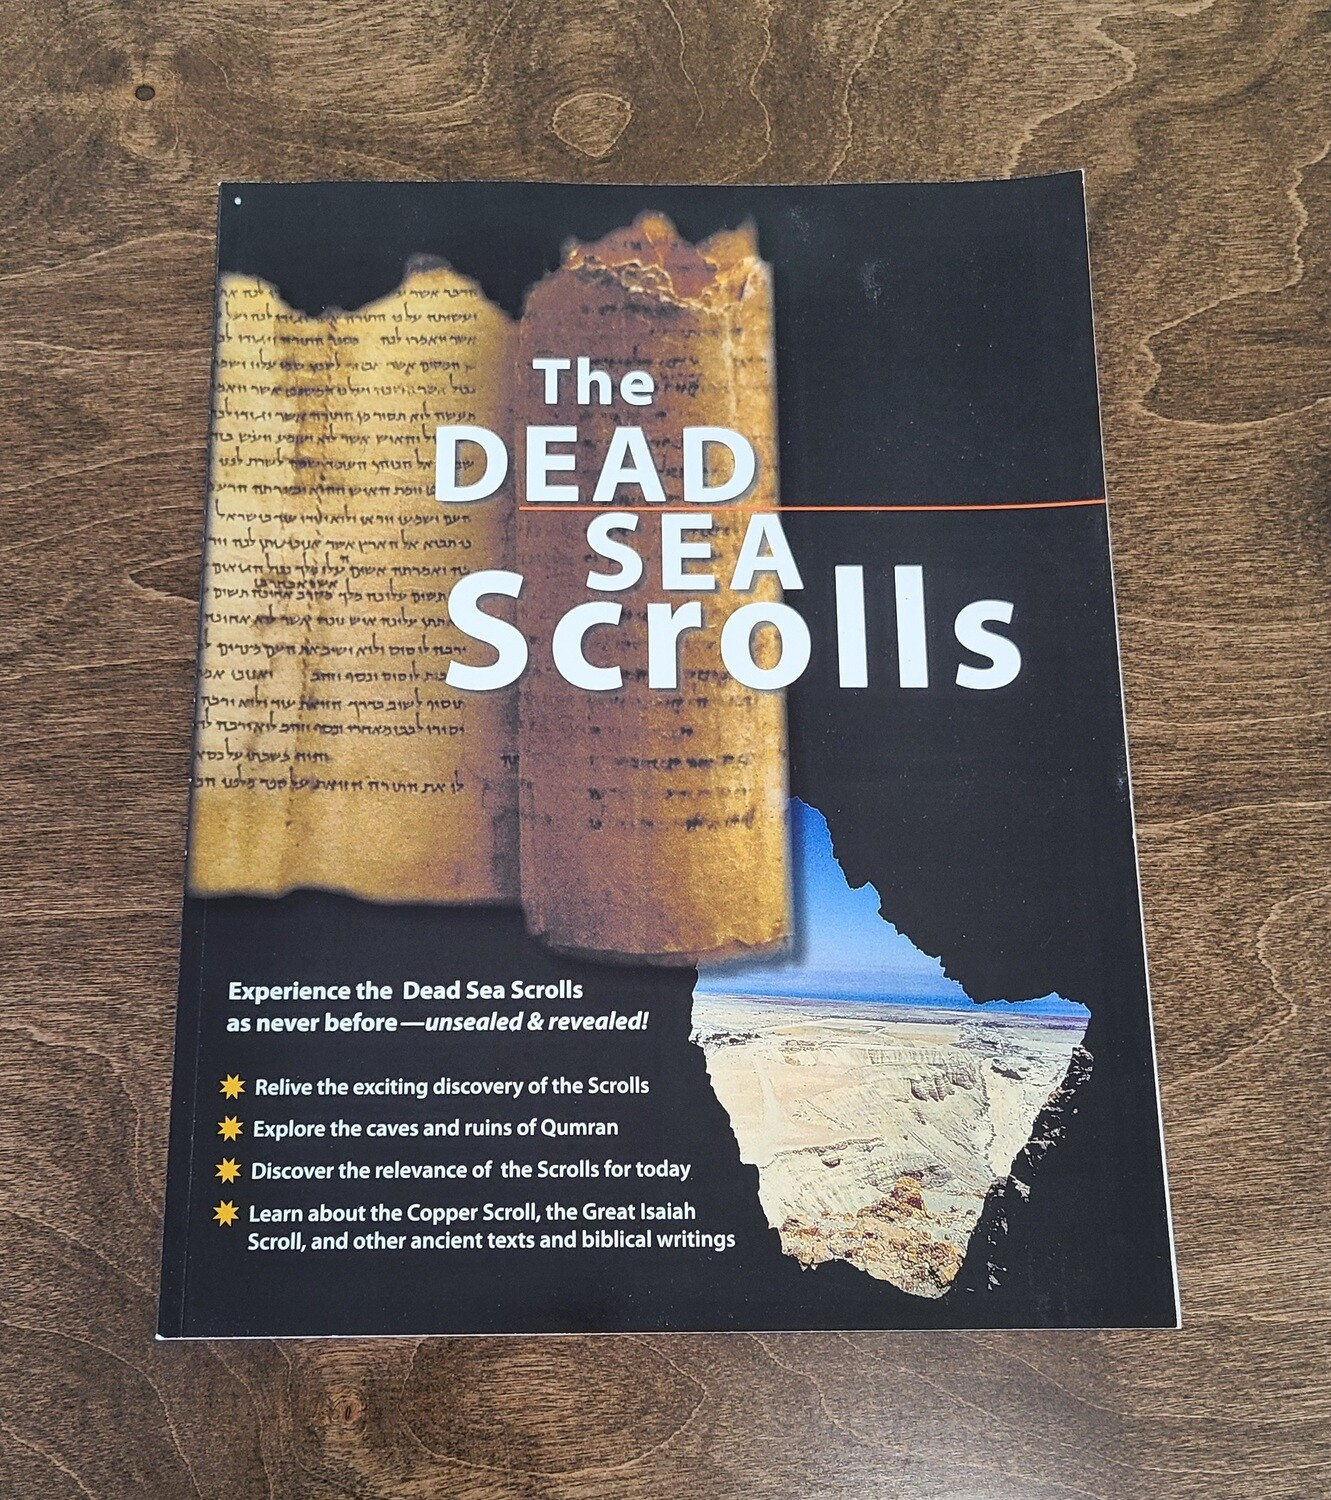 The Dead Sea Scrolls by Biblical Archaeology Society and Society of Biblical Literature